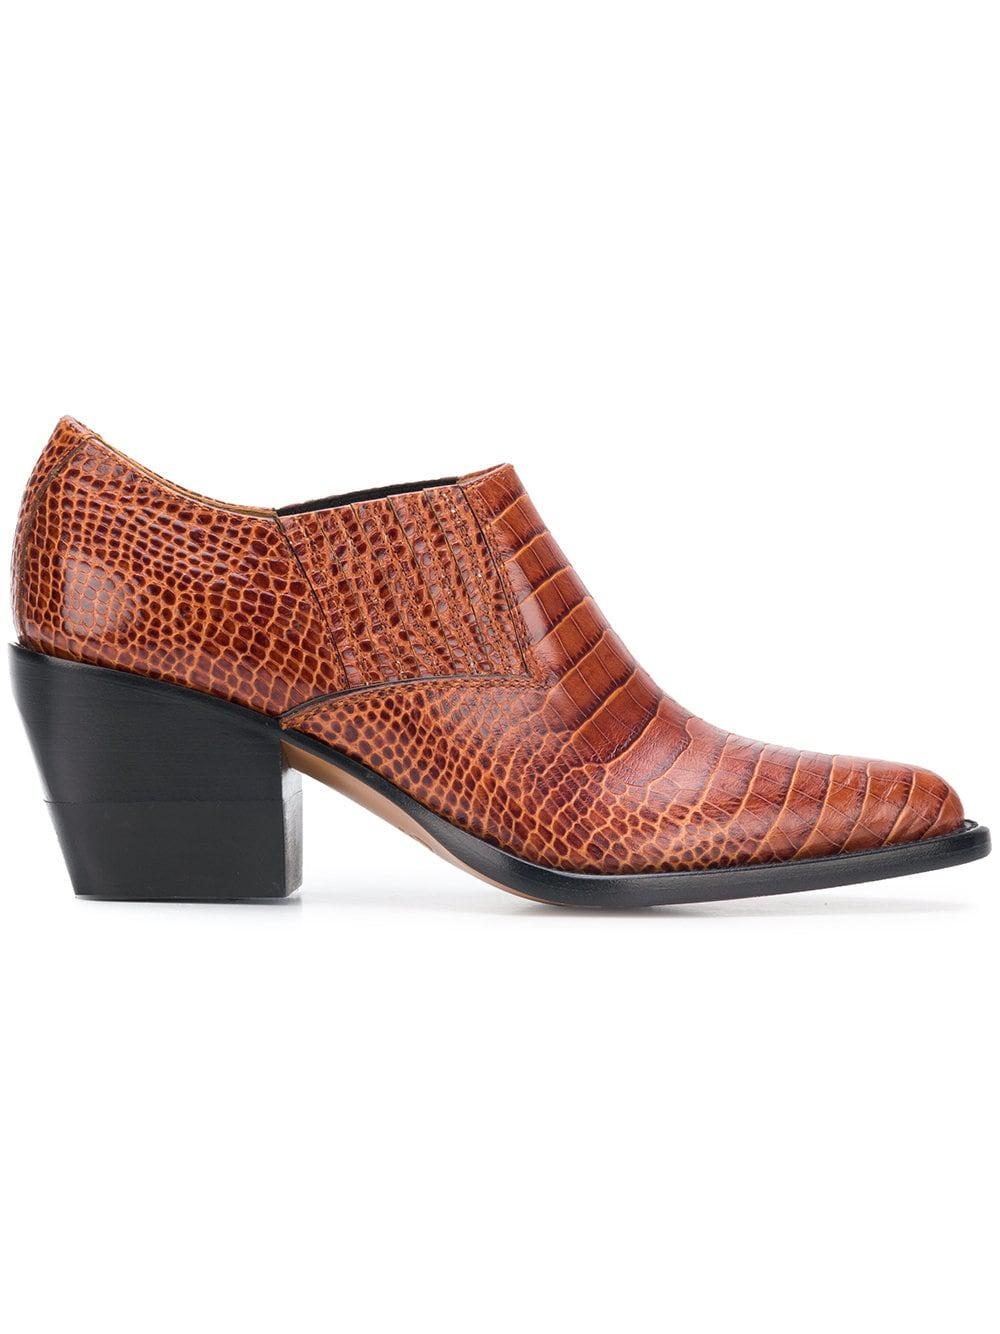 Chloé Leather Woven Pointed Ankle Boots in Brown